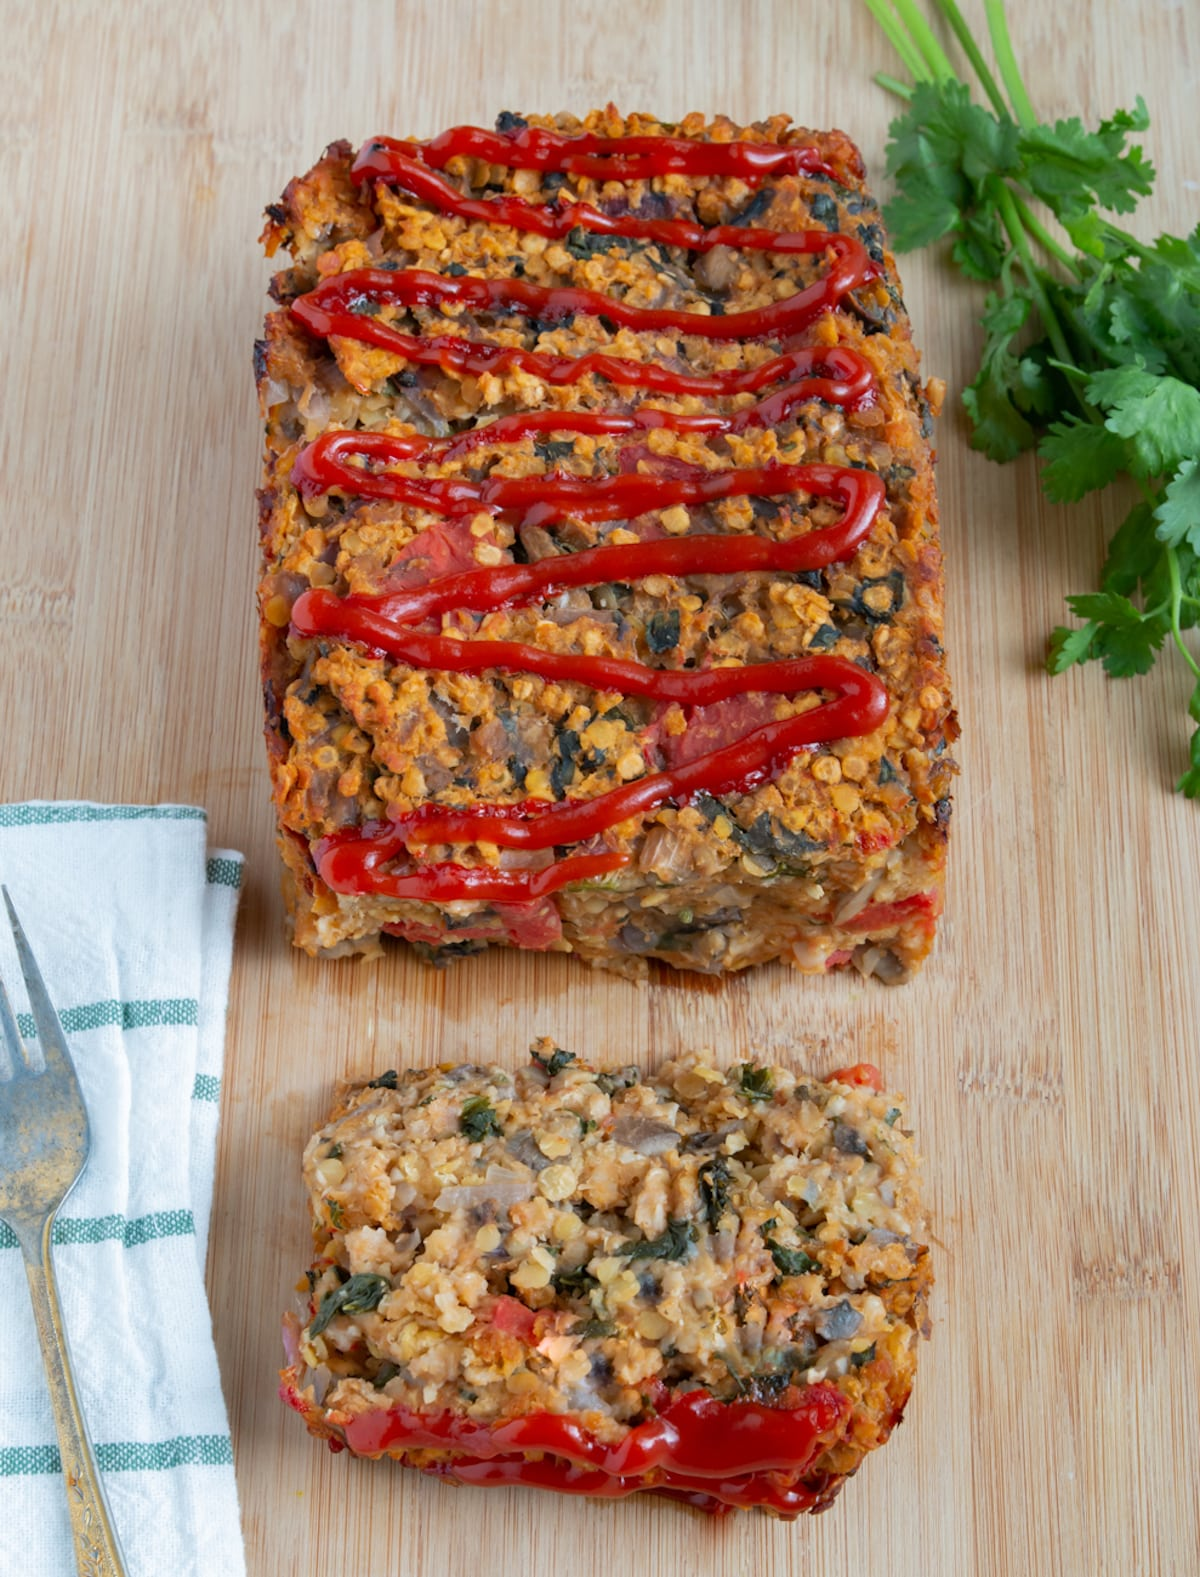 sliced vegan lentil loaf with a ketchup drizzle on top